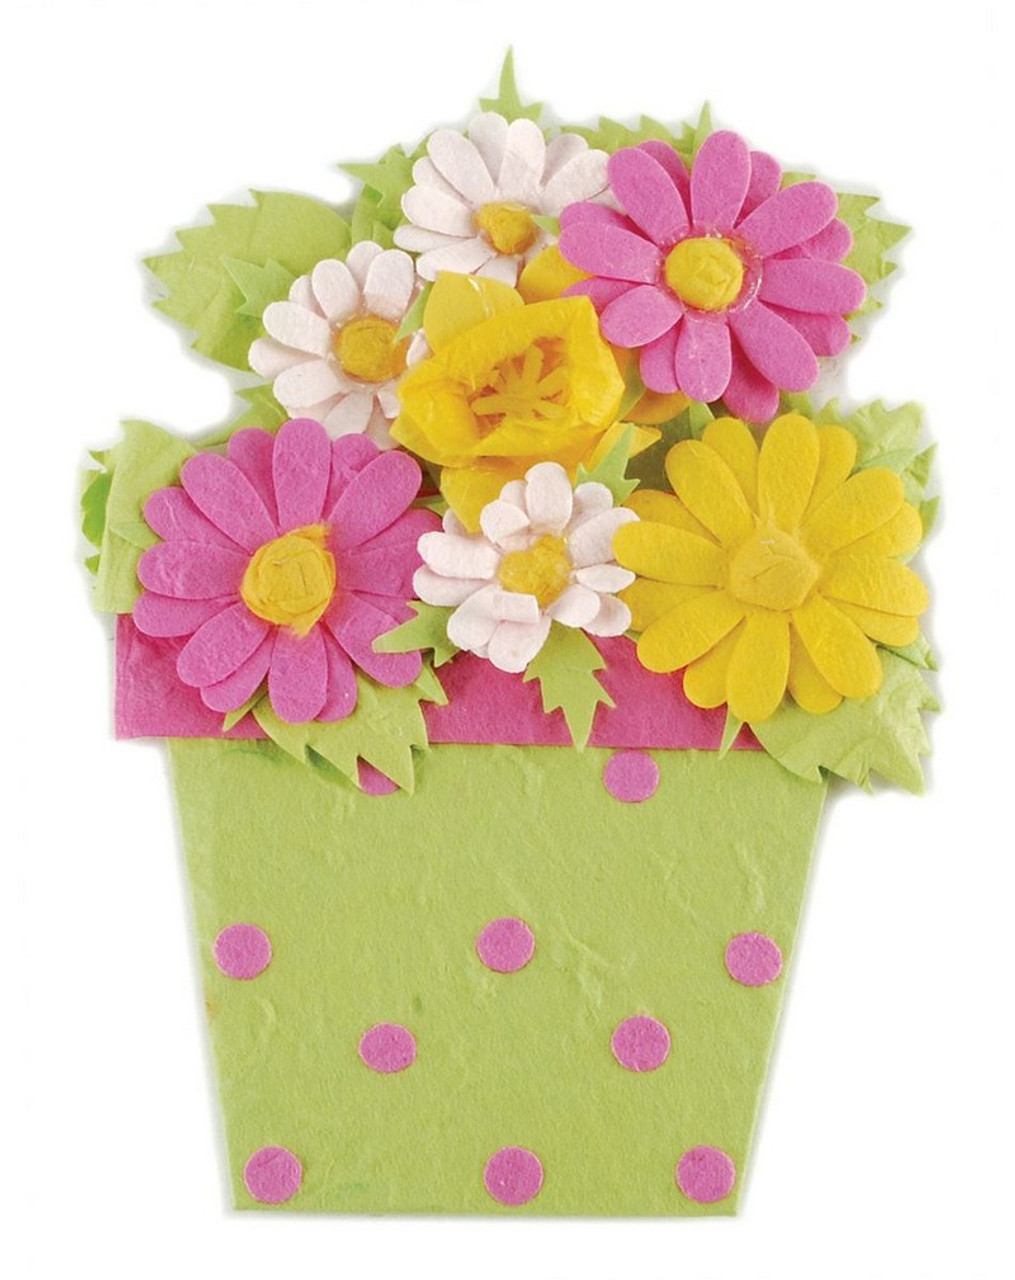 151 71543 Green Pink Flowers Gift Card Holder In Wrapping Pack Of 12